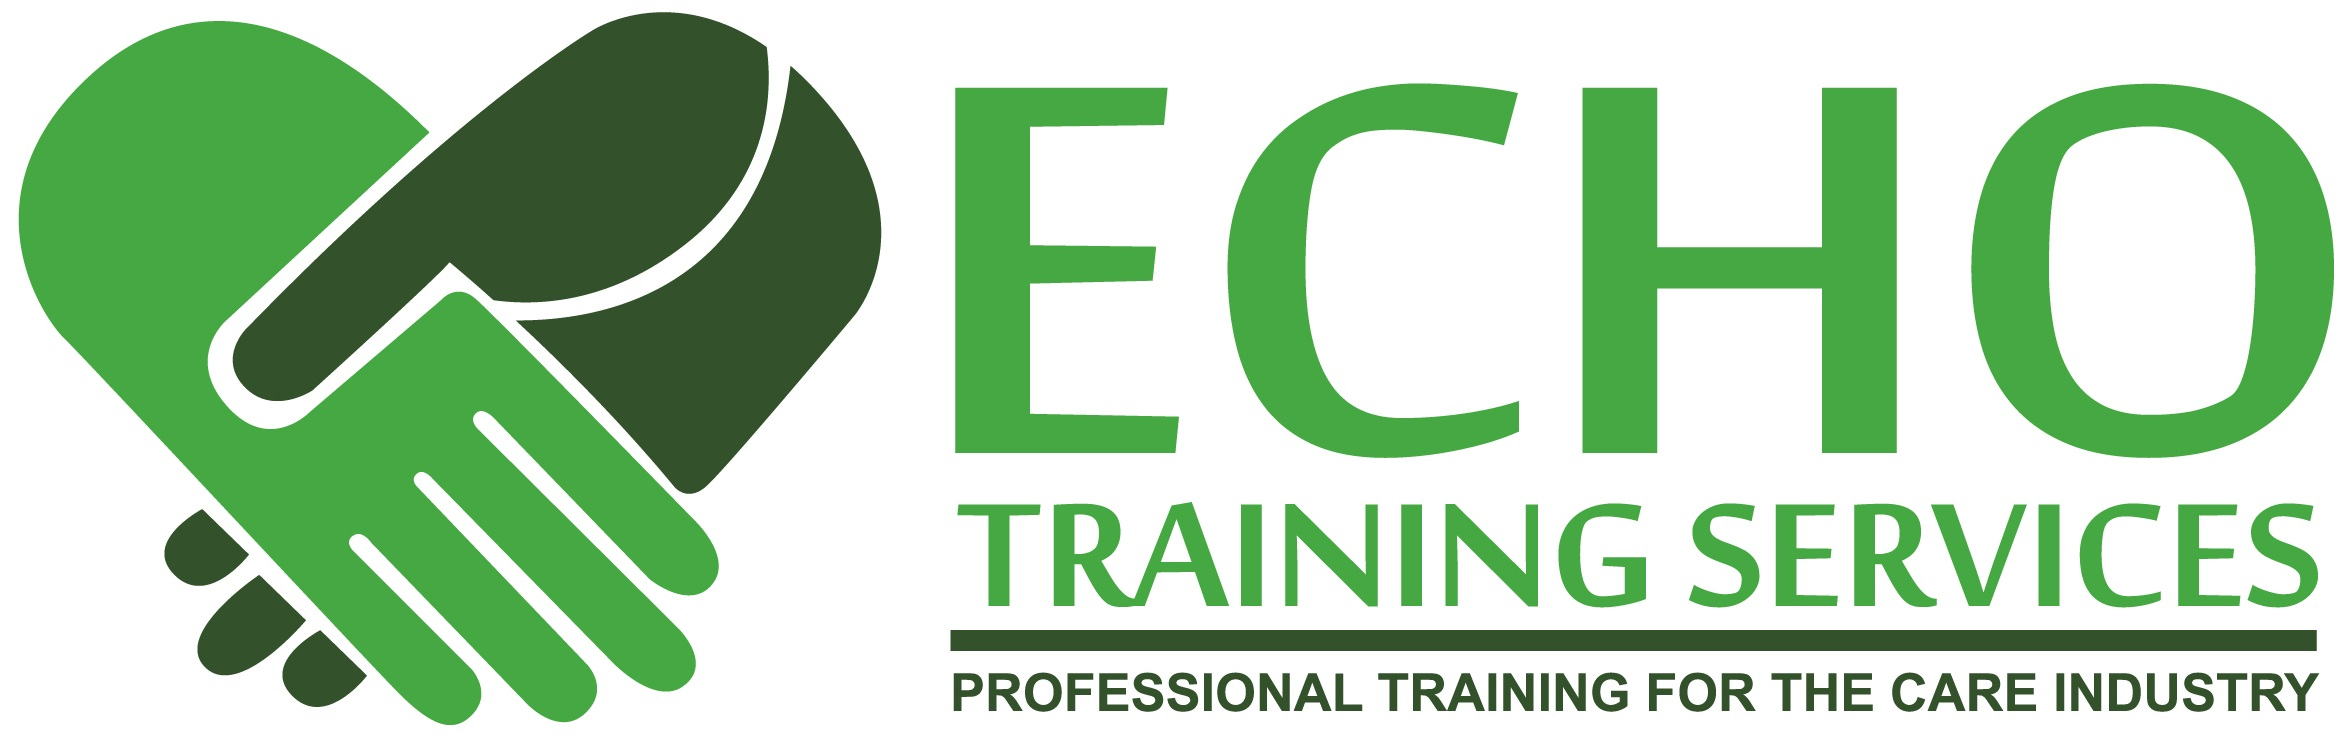 Echo Training Services (logo): Professional Training for the Care Industry